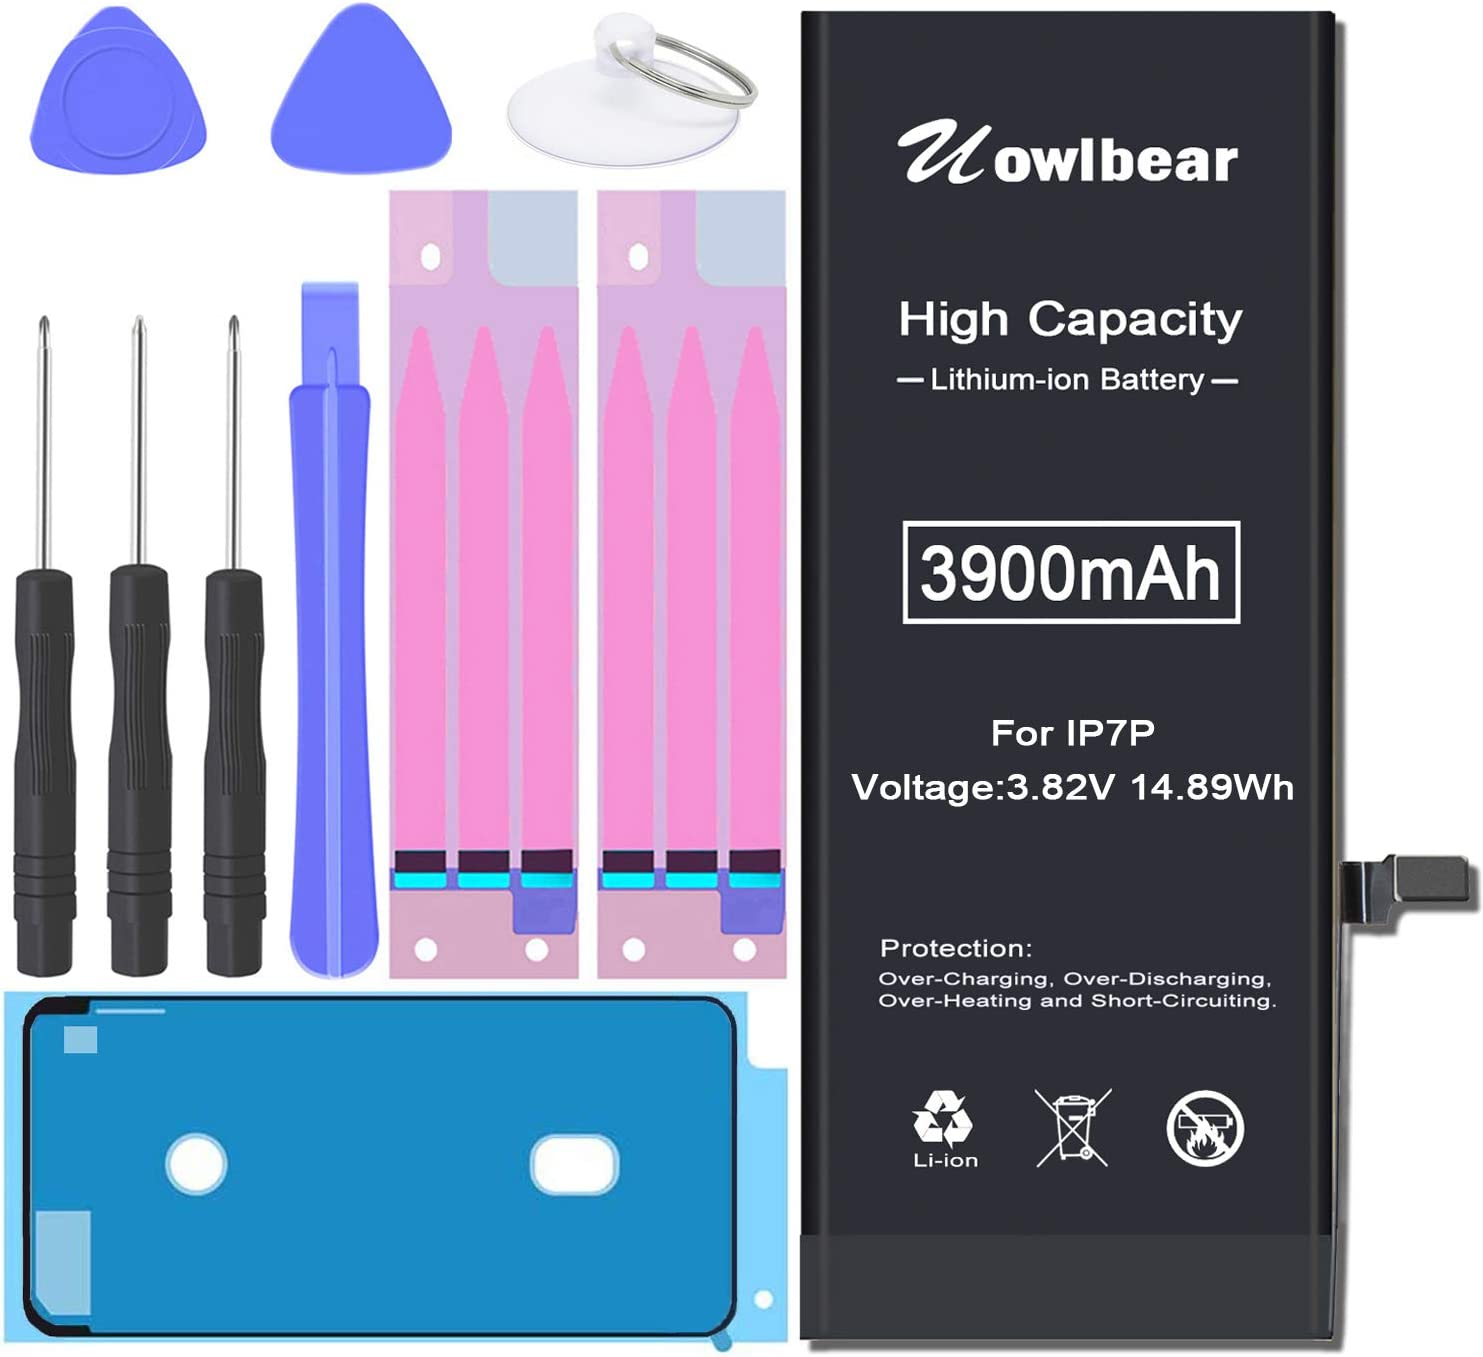 Battery for iPhone 7 Plus, uowlbear 3900mAh High Capacity Battery for 7 Plus A1661 A1784 A1785 with Complete Replacement Tool Kits, Waterproof Seals and 2 Set Adhesive Strips